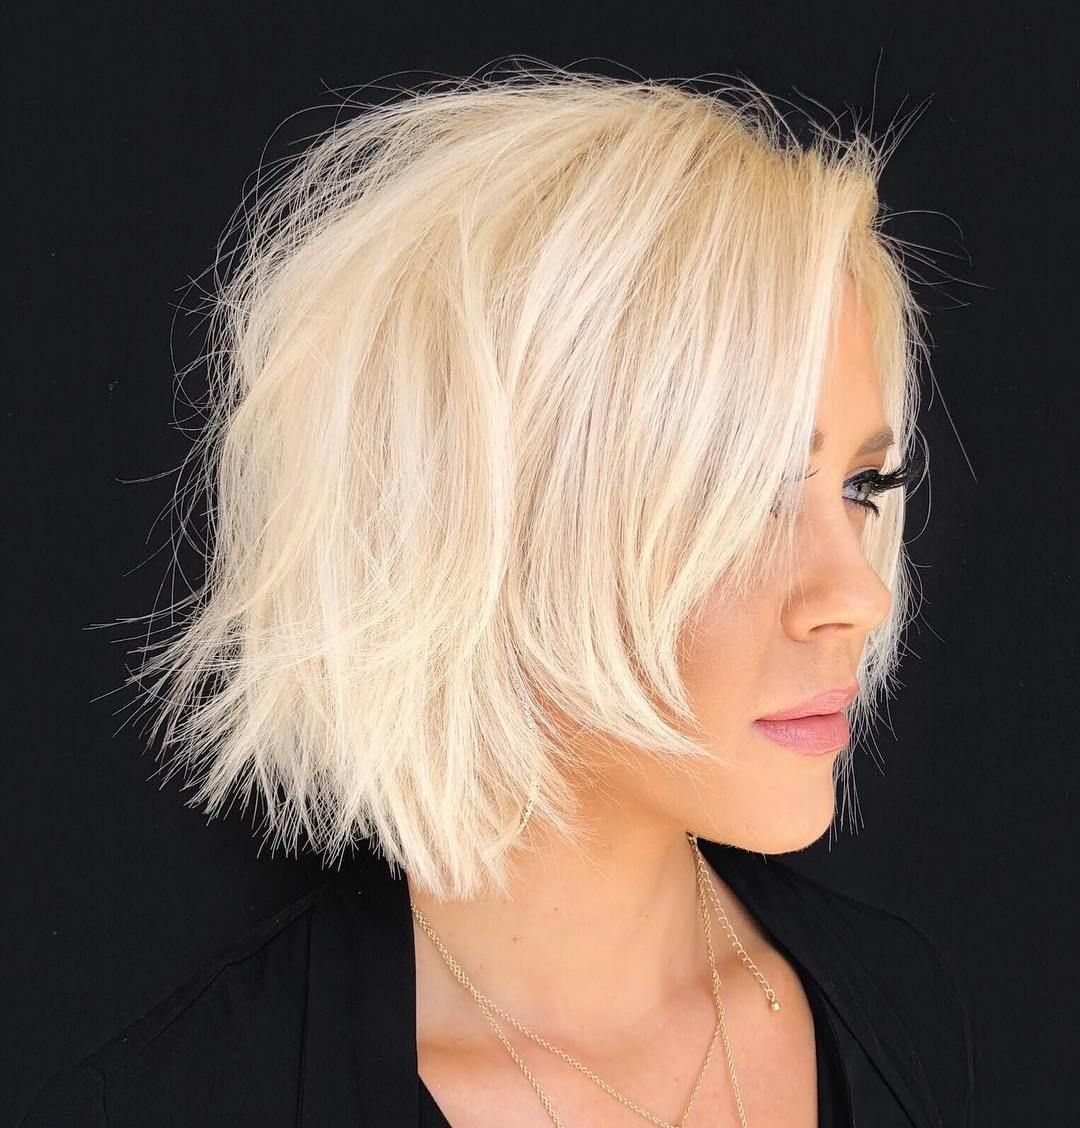 45 Short Hairstyles For Fine Hair Worth Trying In 2020 In 2020 Messy Short Hair Choppy Bob Hairstyles Wavy Bob Hairstyles